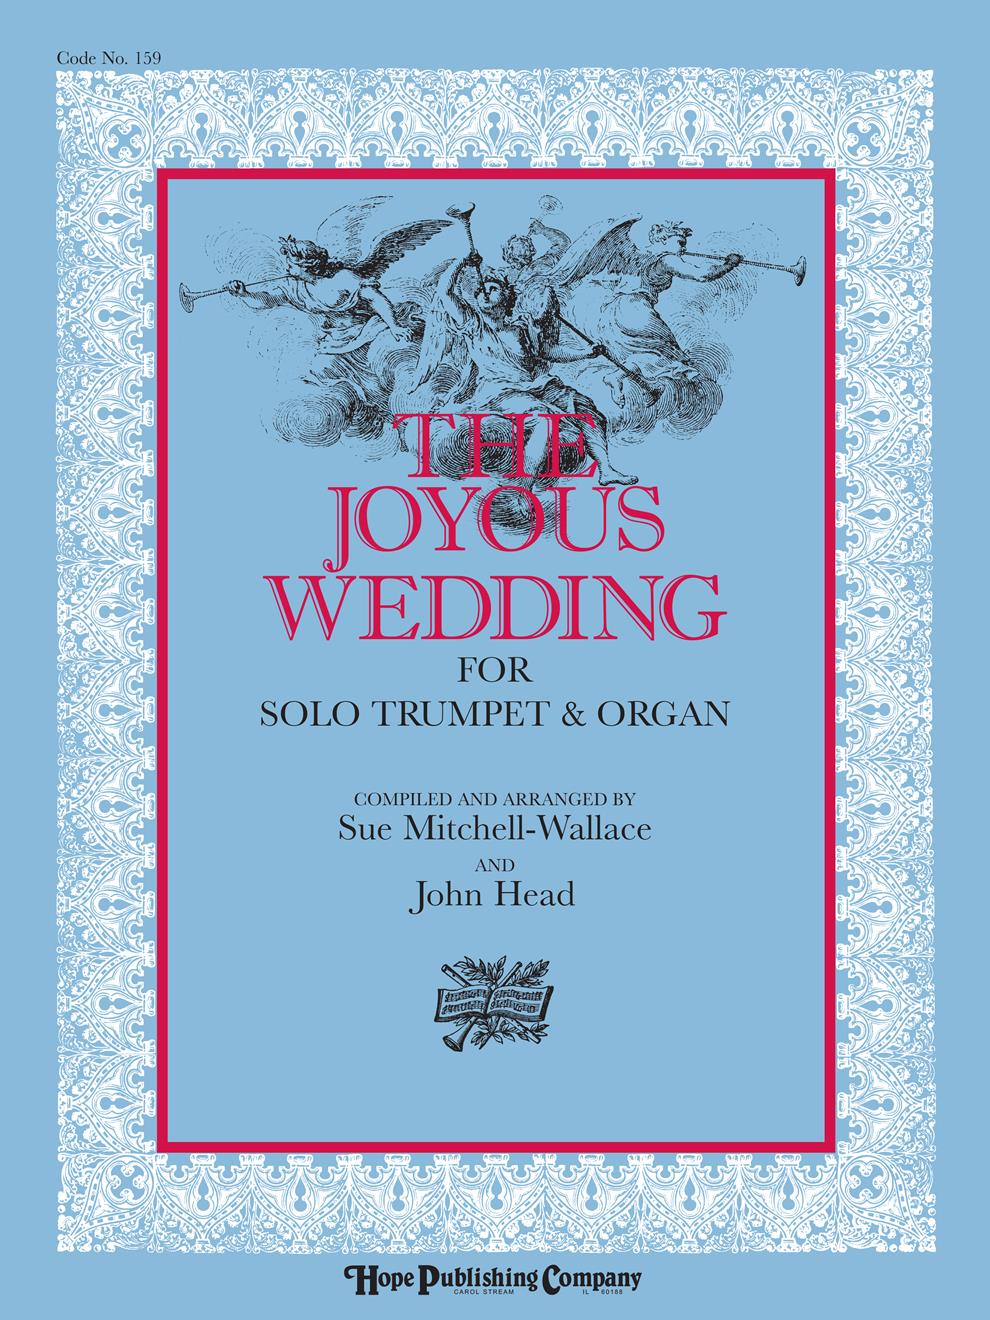 Joyous Wedding The Cover Image